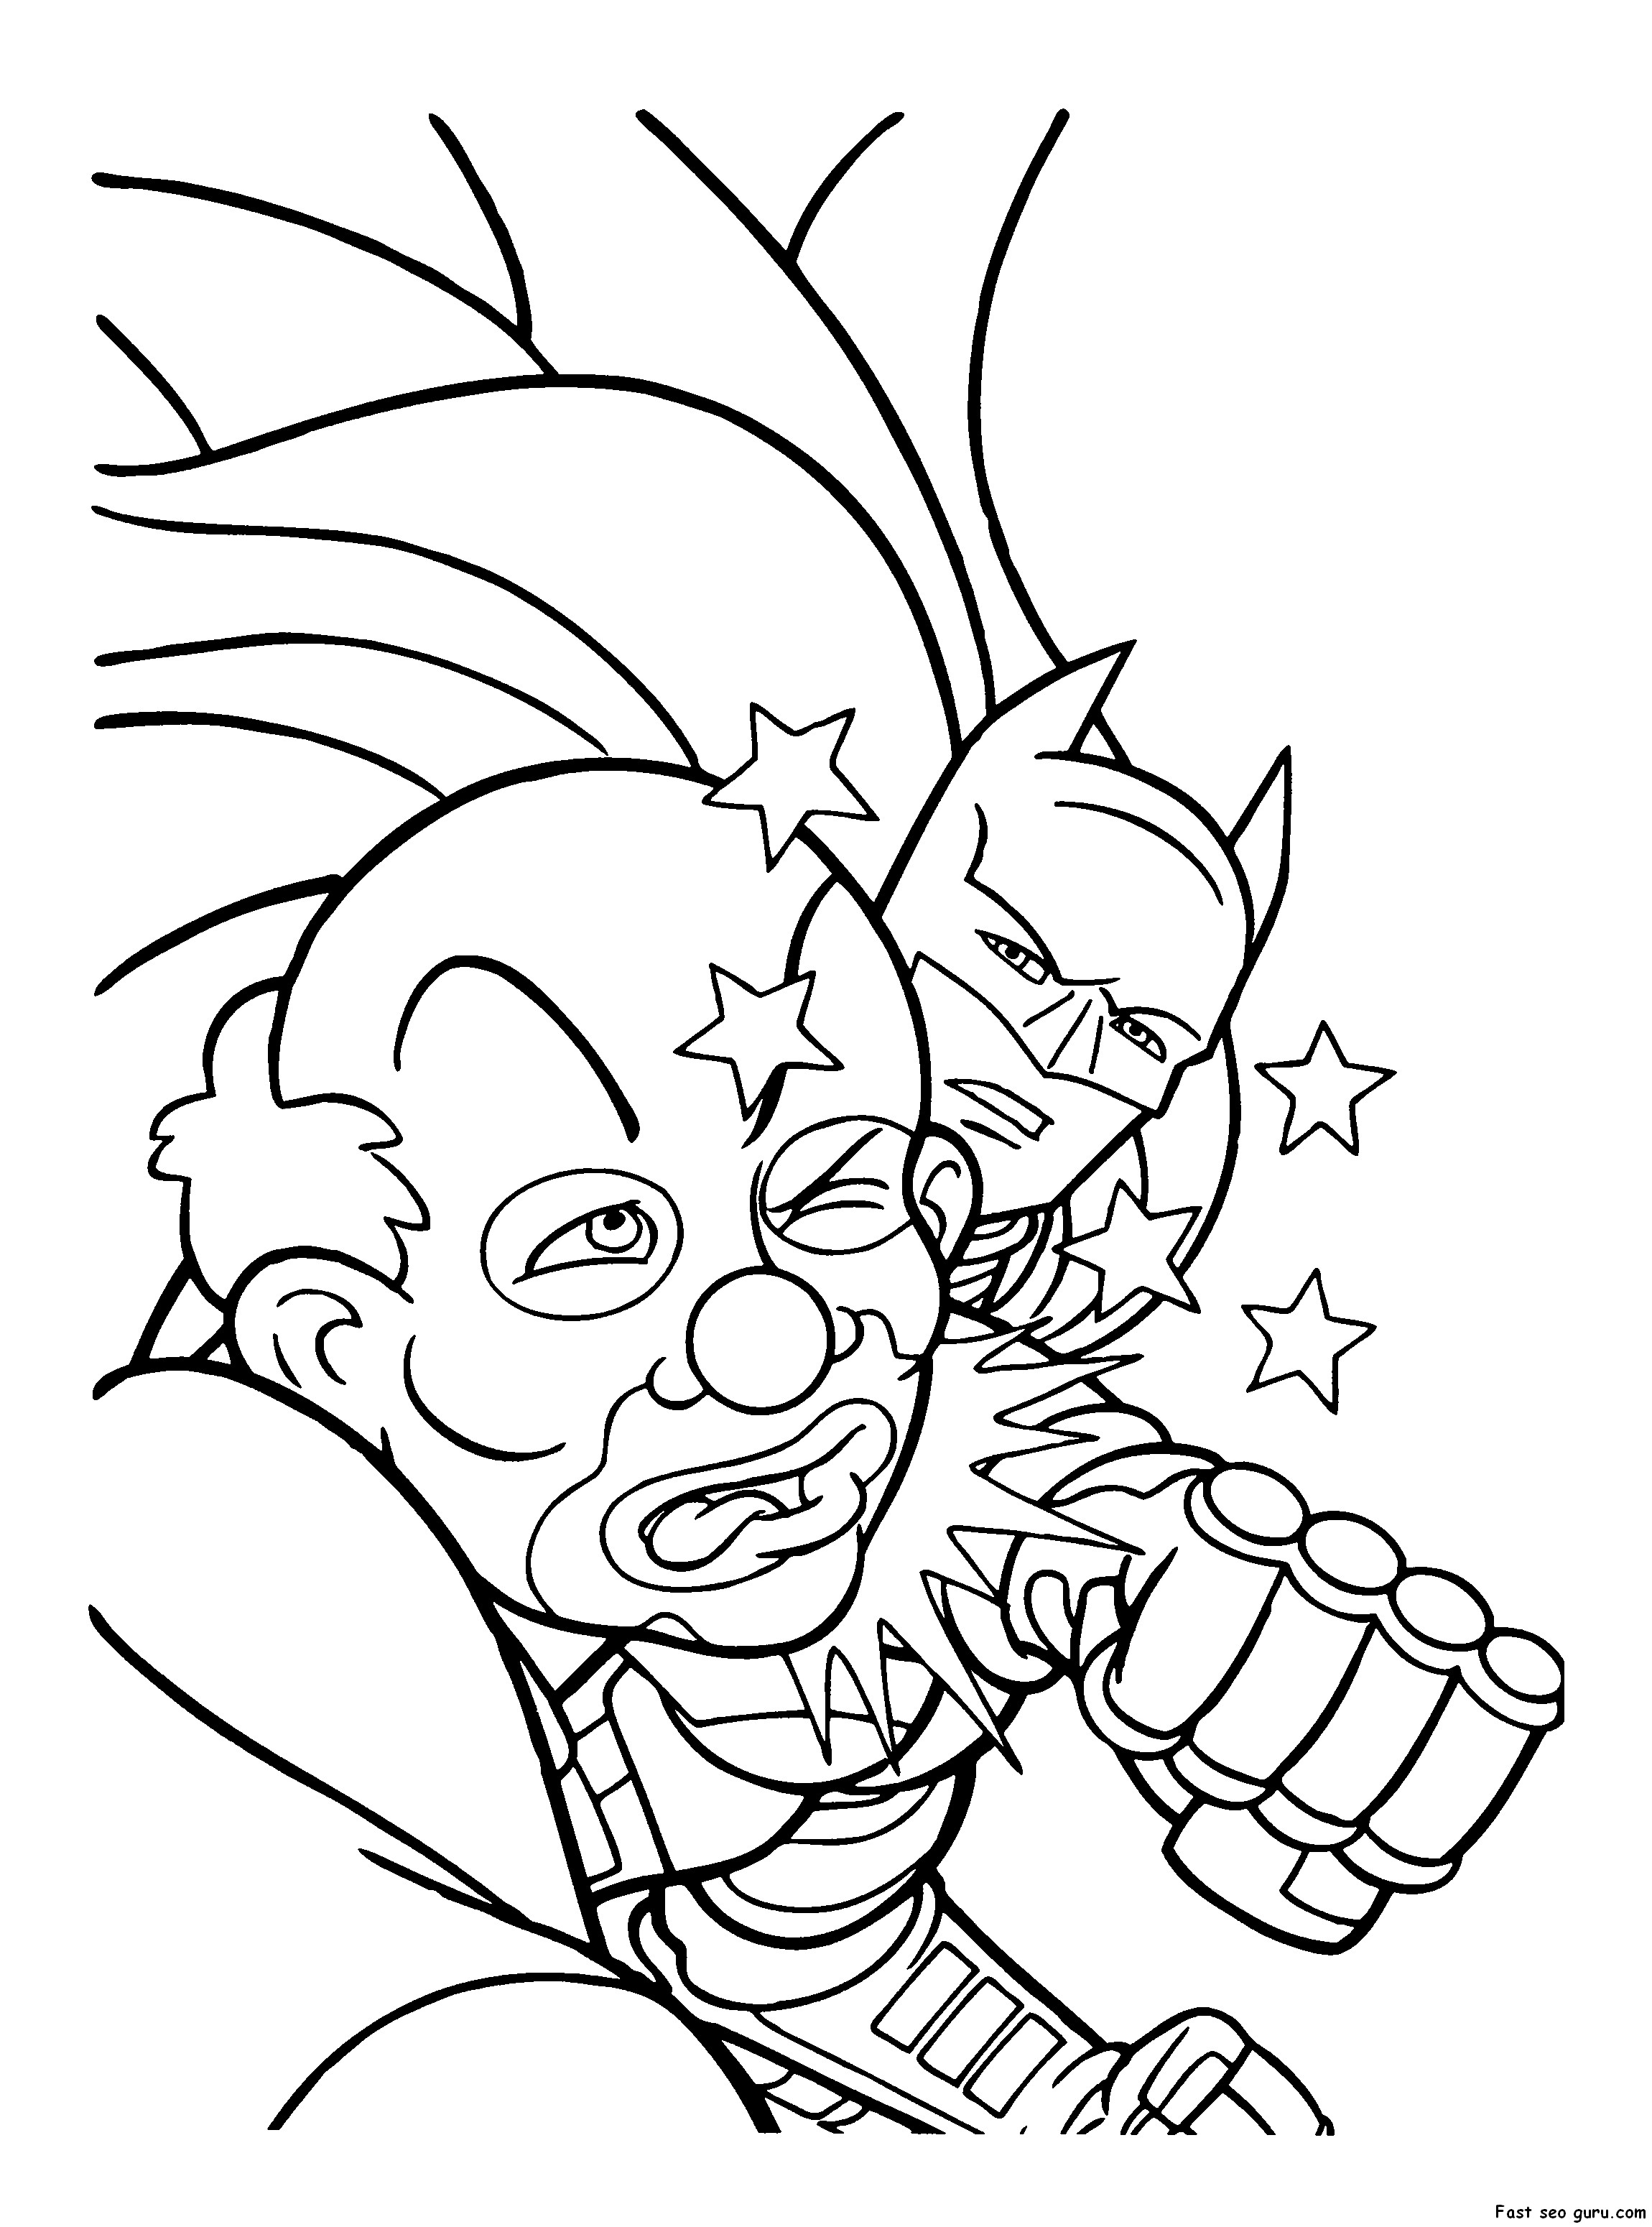 Com Category Coloring Pages Sub Category Joker Coloring Pages The Joker Coloring Pages